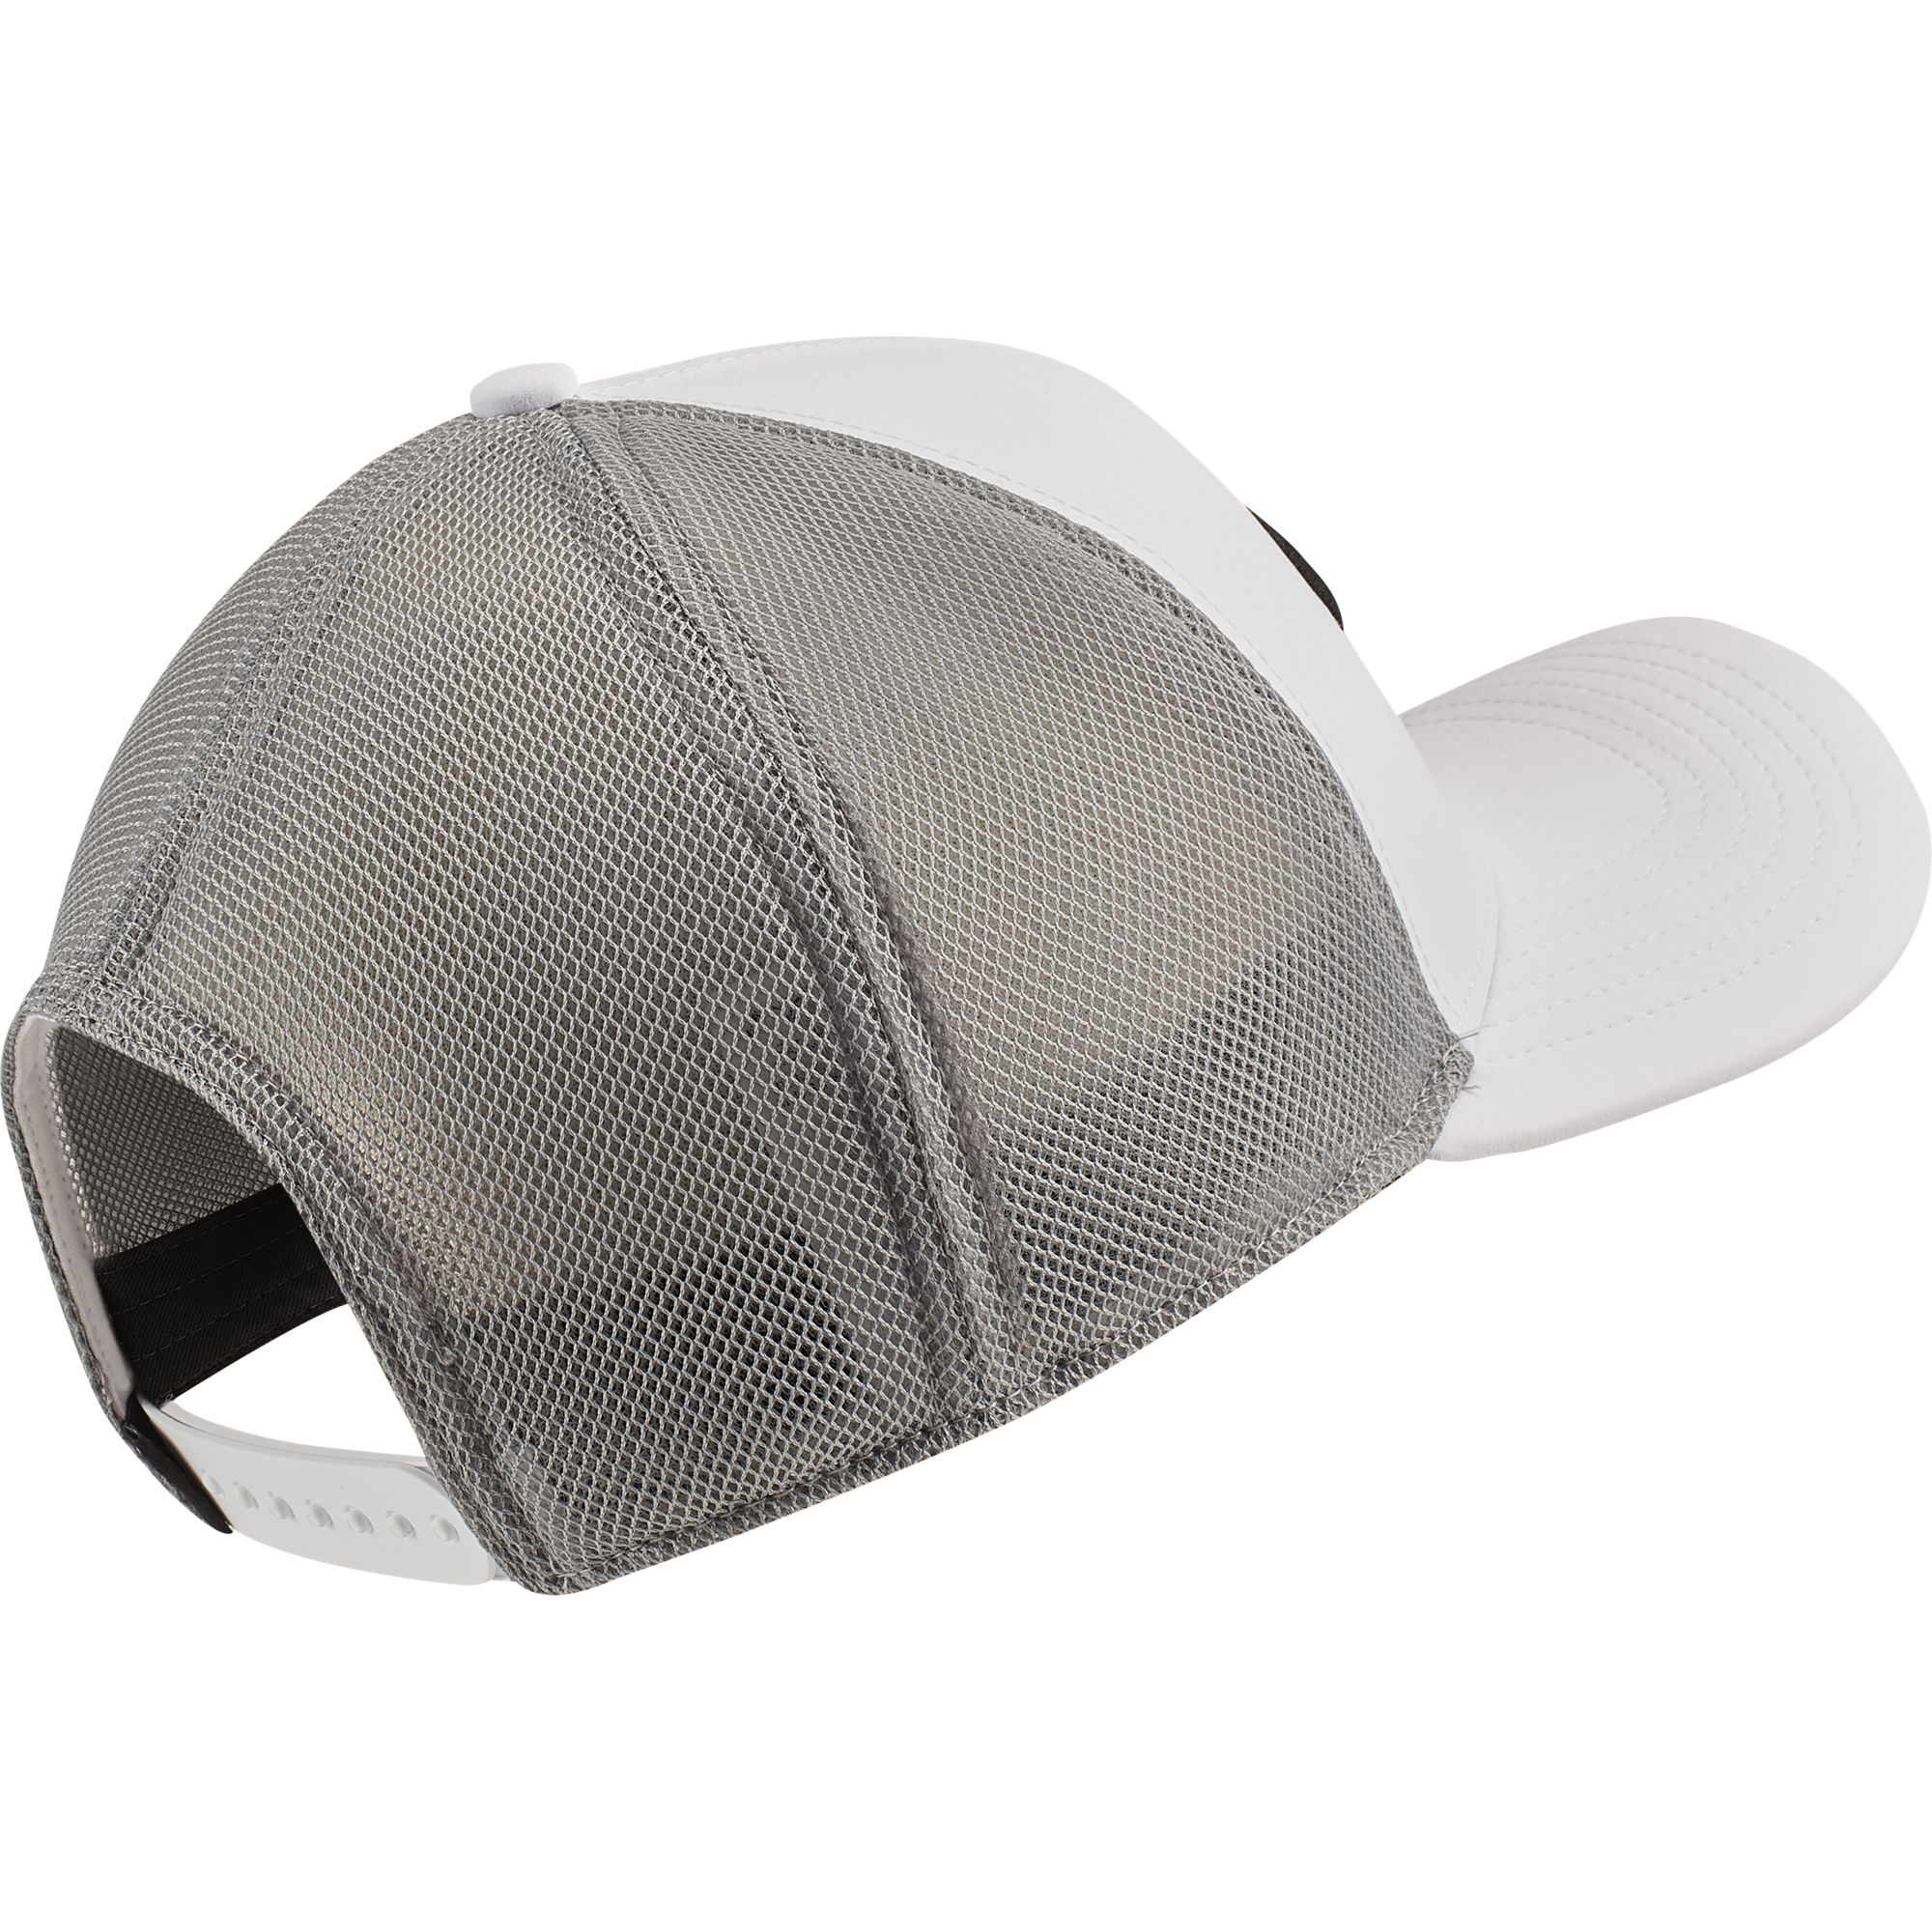 AeroBill Classic99 Mesh Golf Hat, White/Black, large